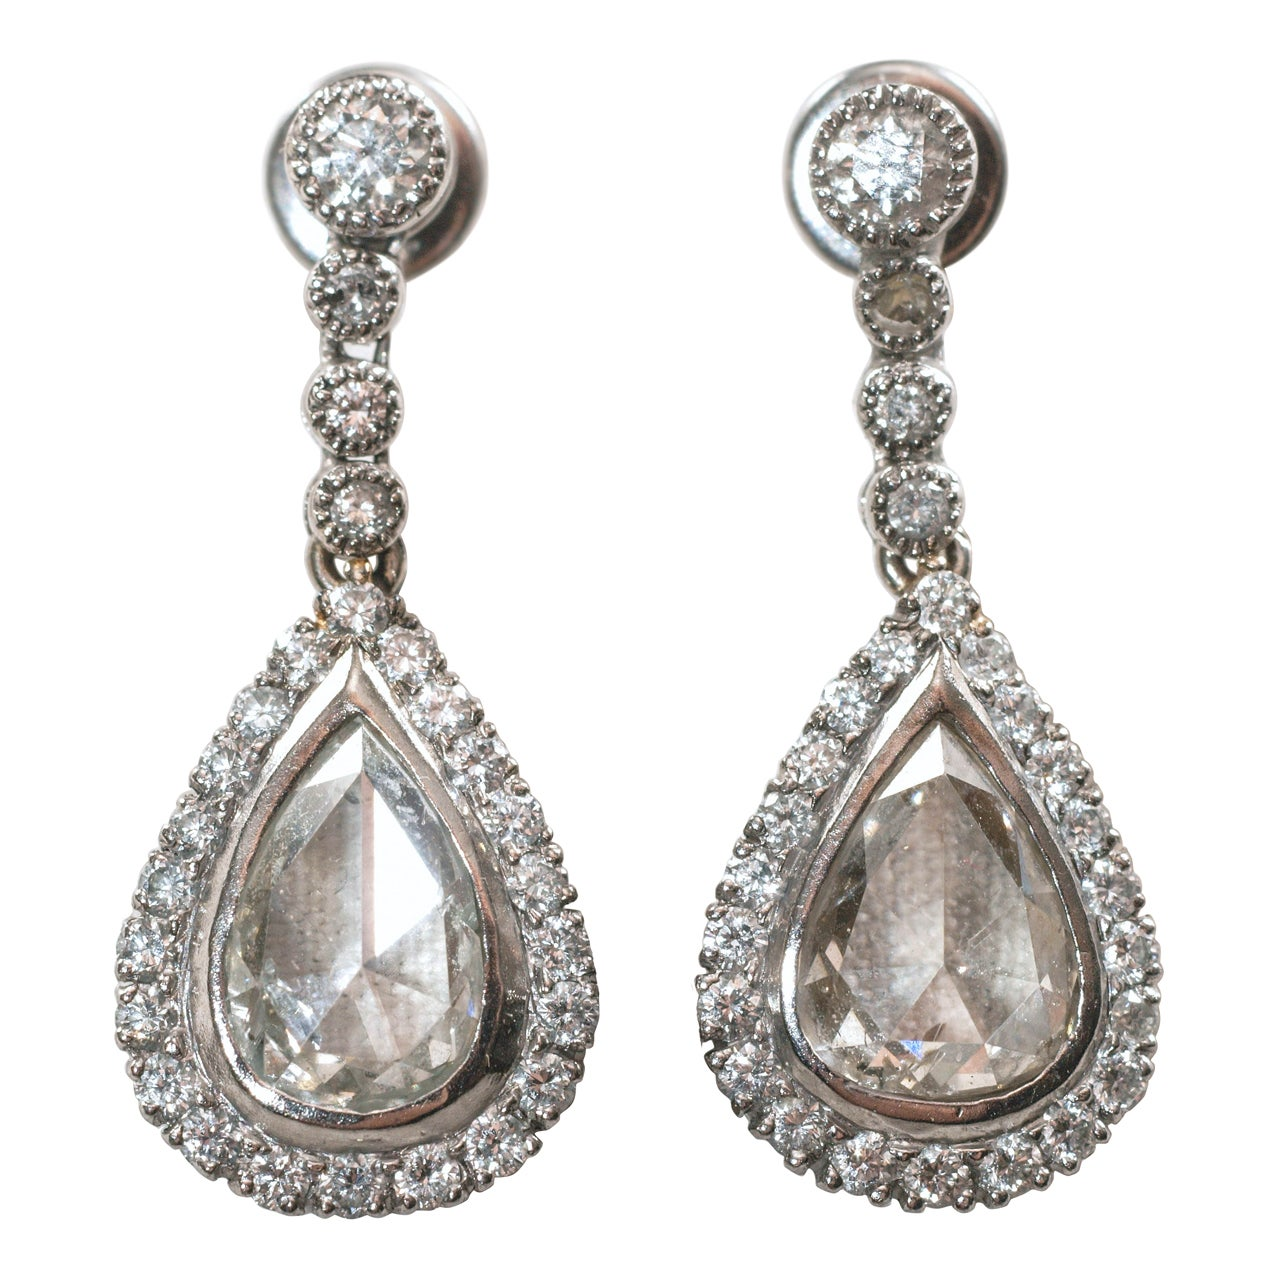 Antique Rose Cut Diamond Earrings For